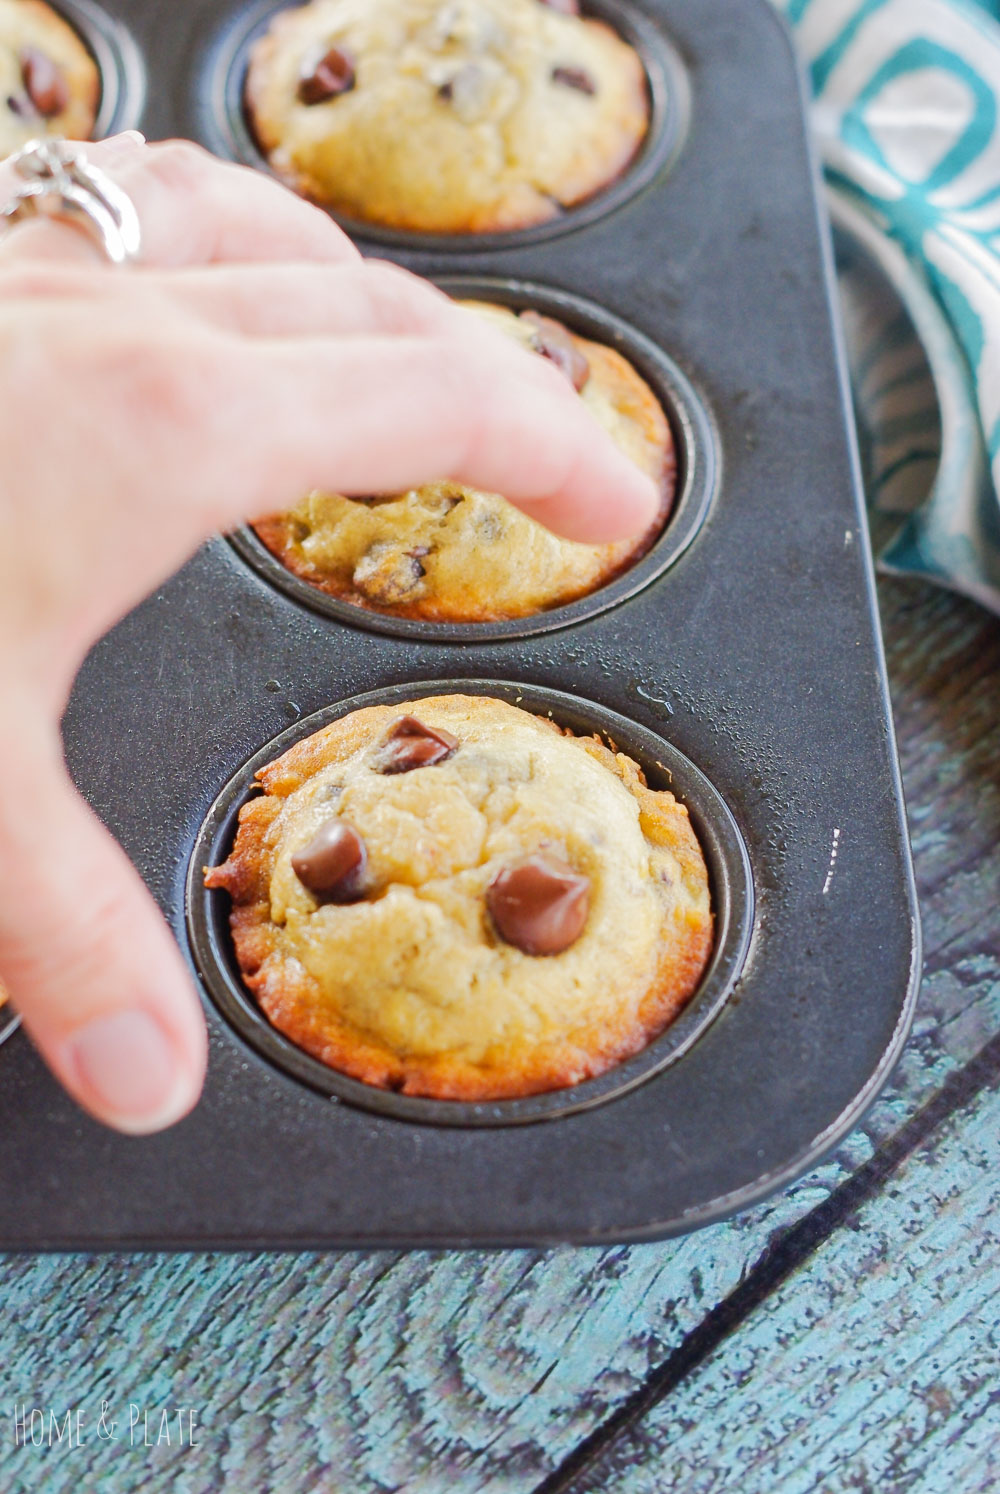 Easy Moist Banana Chocolate Chip Muffins | www.homeandplate.com | These easy banana chocolate chip muffins are moist and delicious for breakfast or a snack.